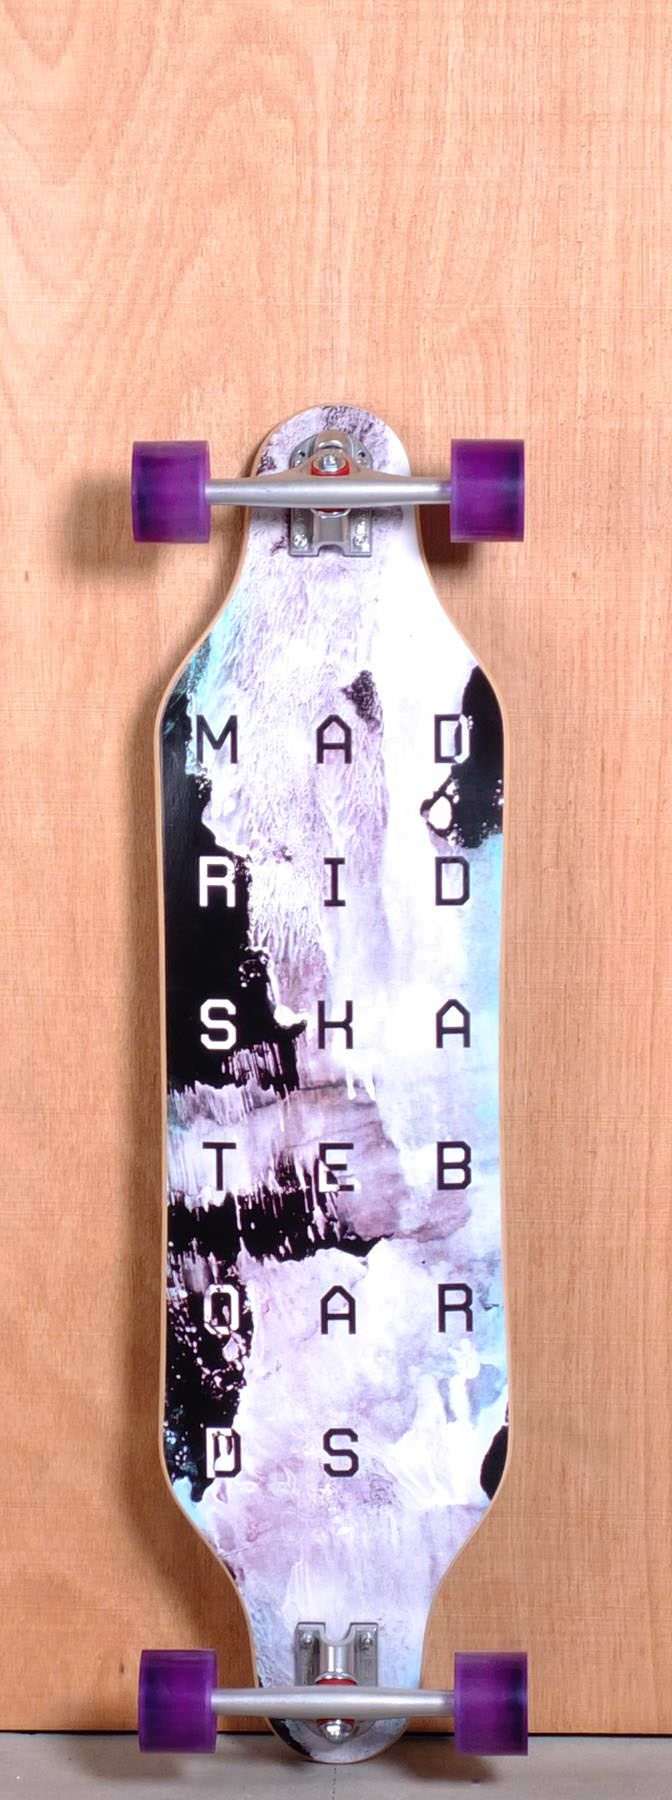 """The Madrid Paint Longboard Complete is designed for Cruising and Carving. Ships fully assembled and ready to skate!  Function: Cruising, Carving, Freeride  Features: Drop Down, Concave, Twin Tip, Wheel Cutouts  Material: 8 Ply Maple  Length: 37.375""""  Width: 9.375""""  Wheelbase: 29.5""""  Thickness: 7/16""""  Hole Pattern: New School  Grip: Black"""